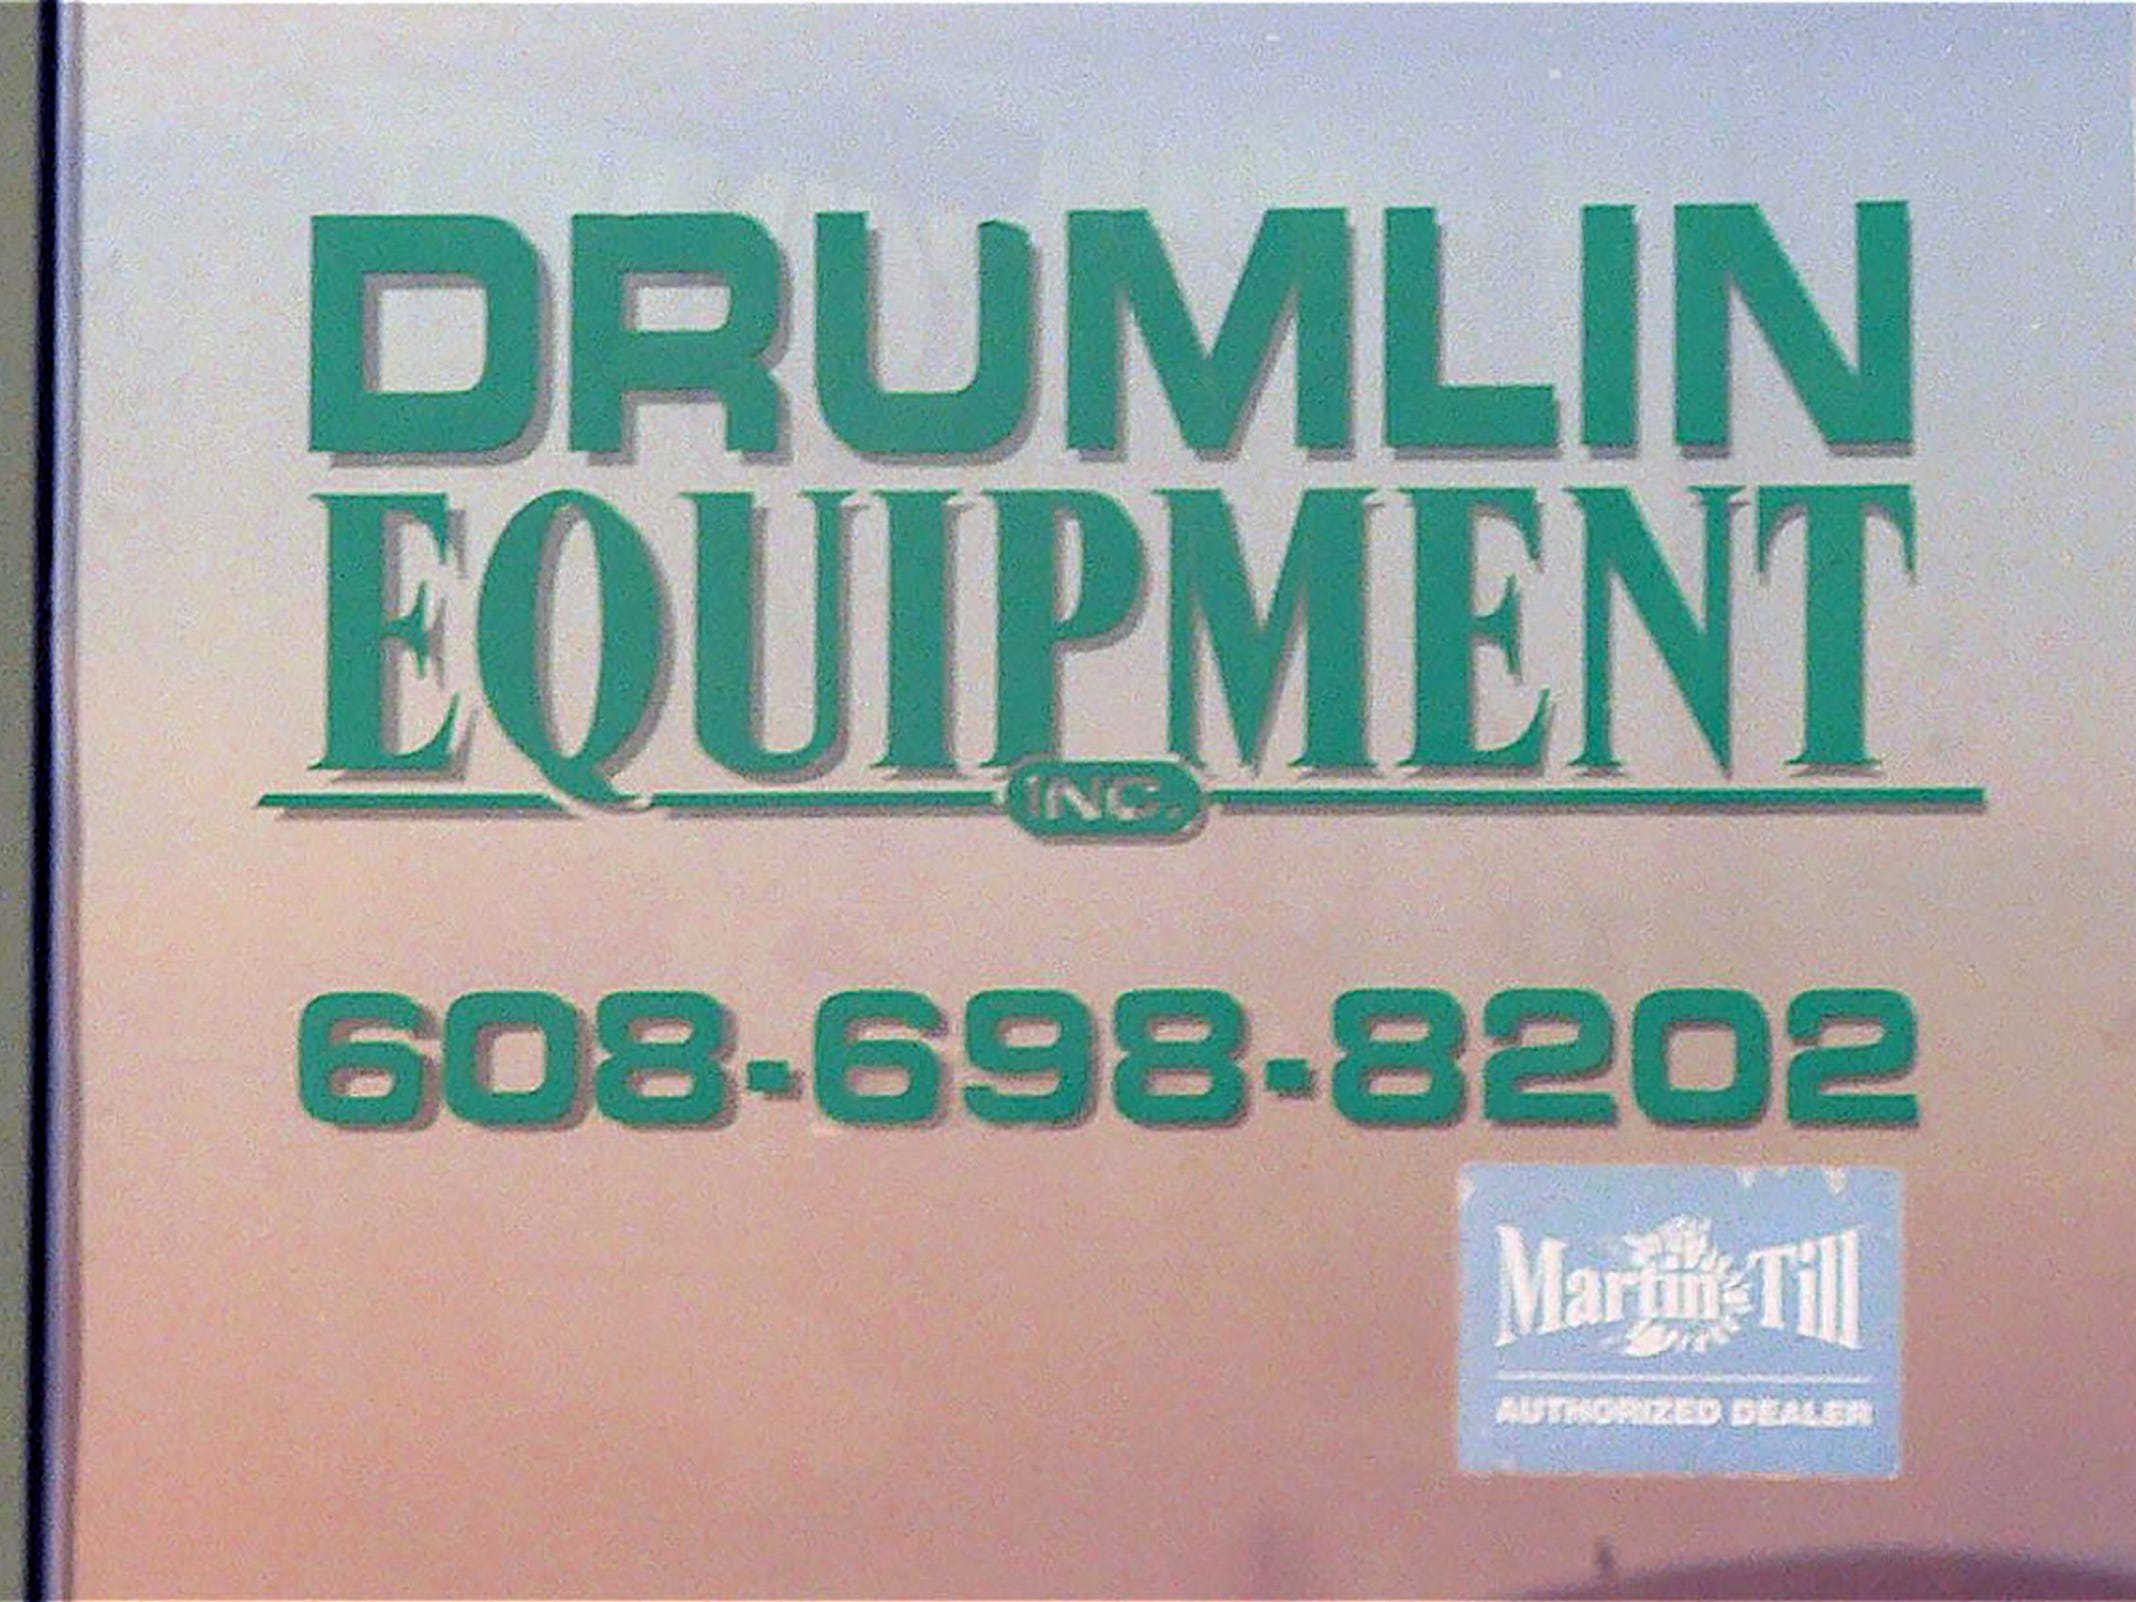 Drumlin Equipment is a niche company.